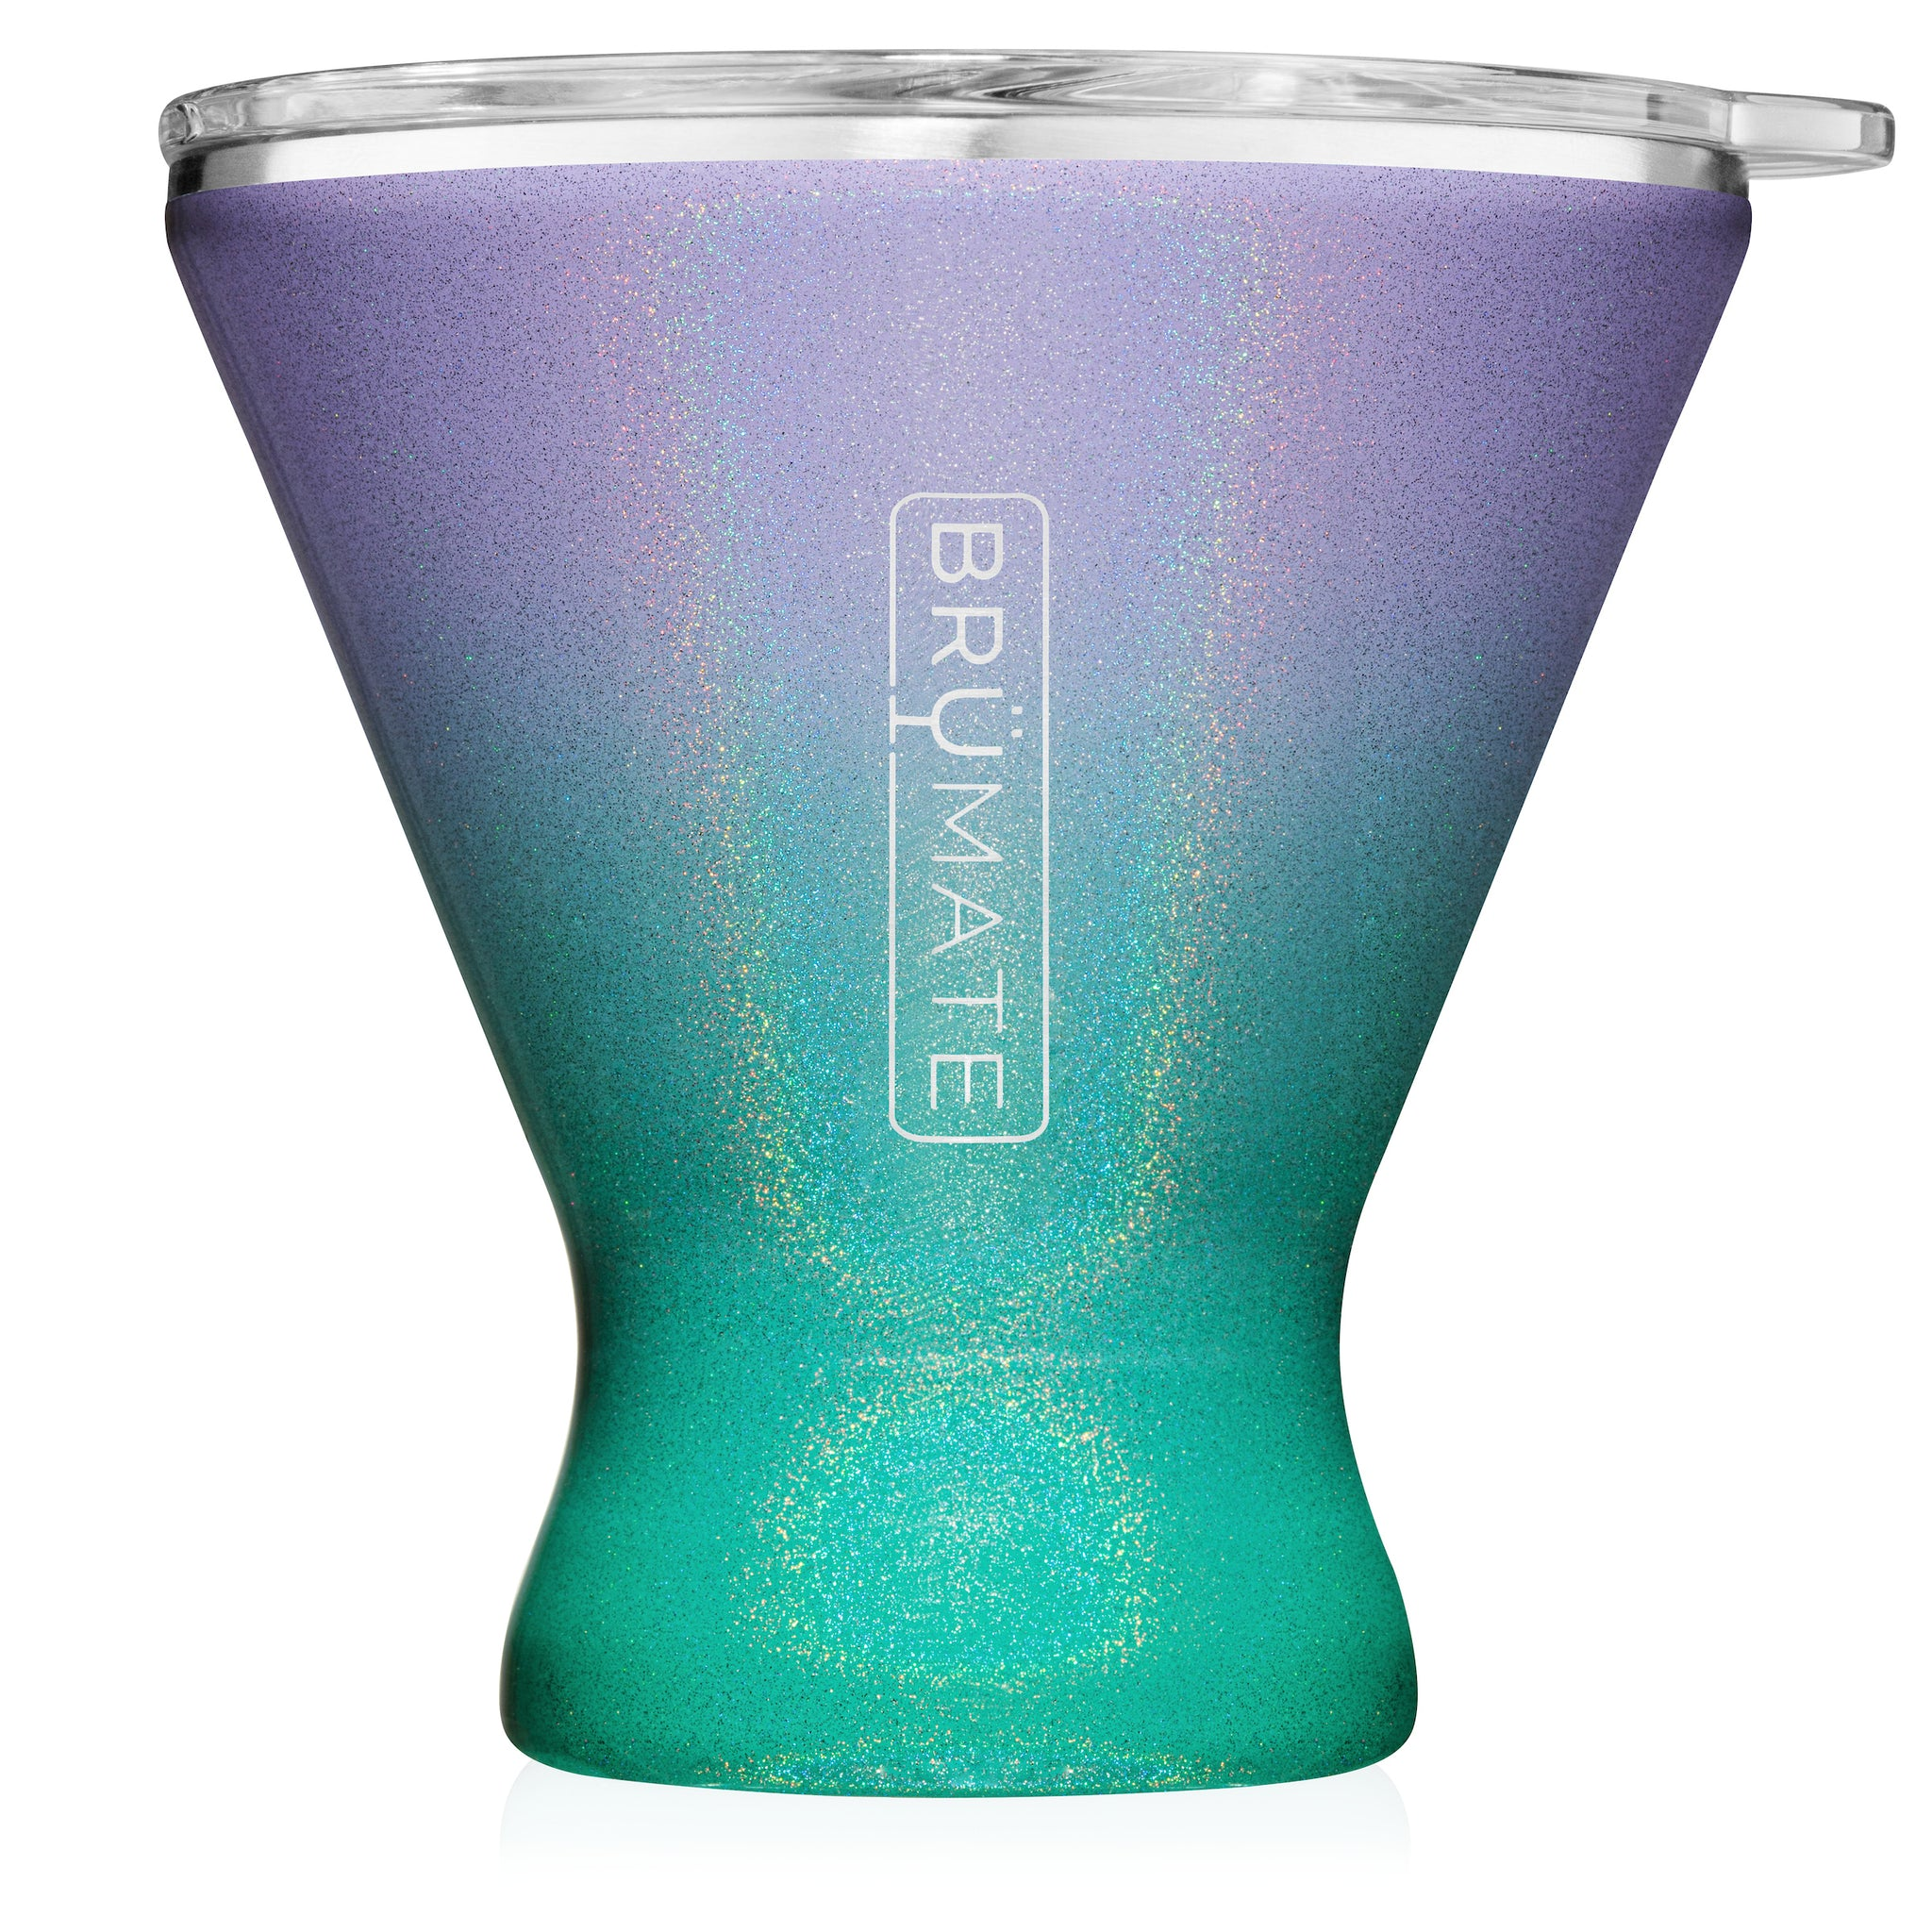 MargTini 10oz Martini / Margarita Tumbler | Glitter Mermaid